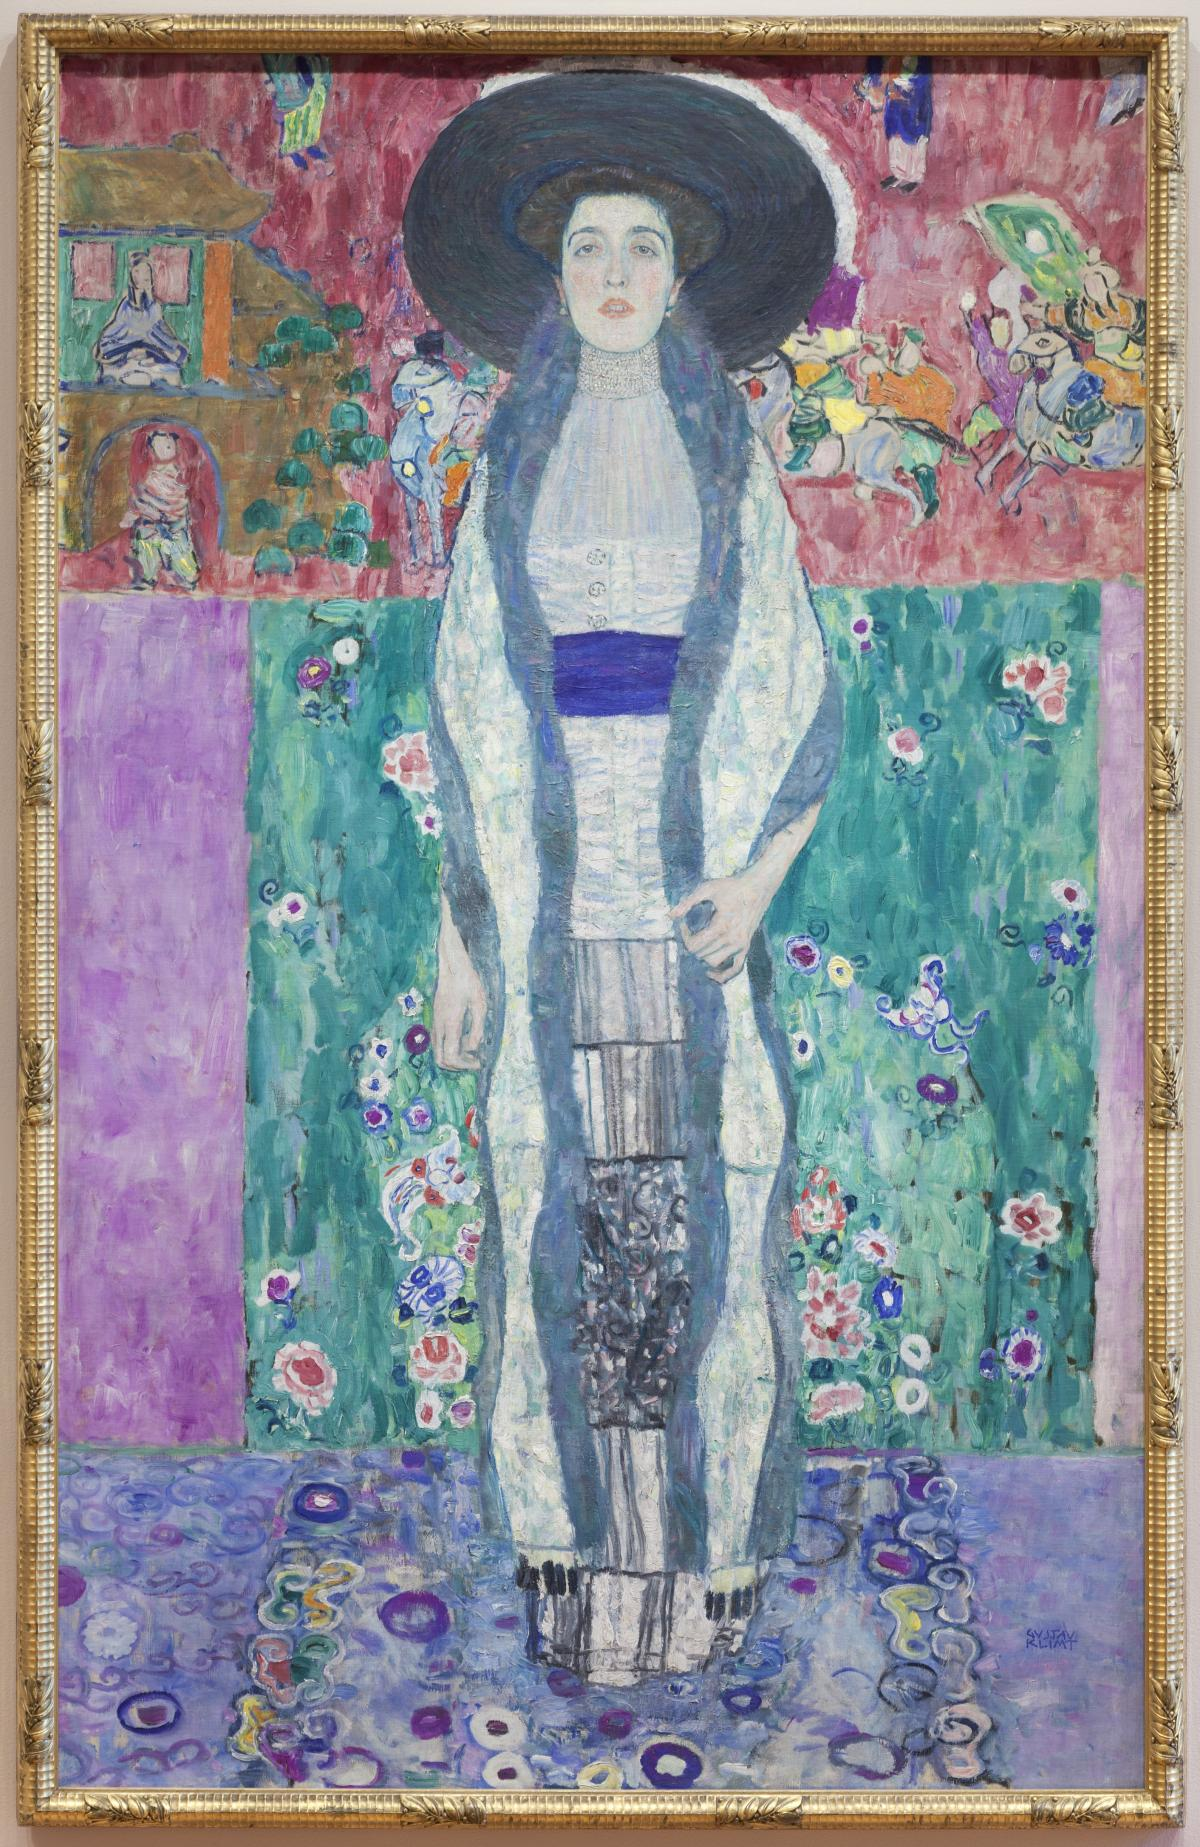 Klimt's Adele Bloch-Bauer II is on view at The Museum of Modern Art.